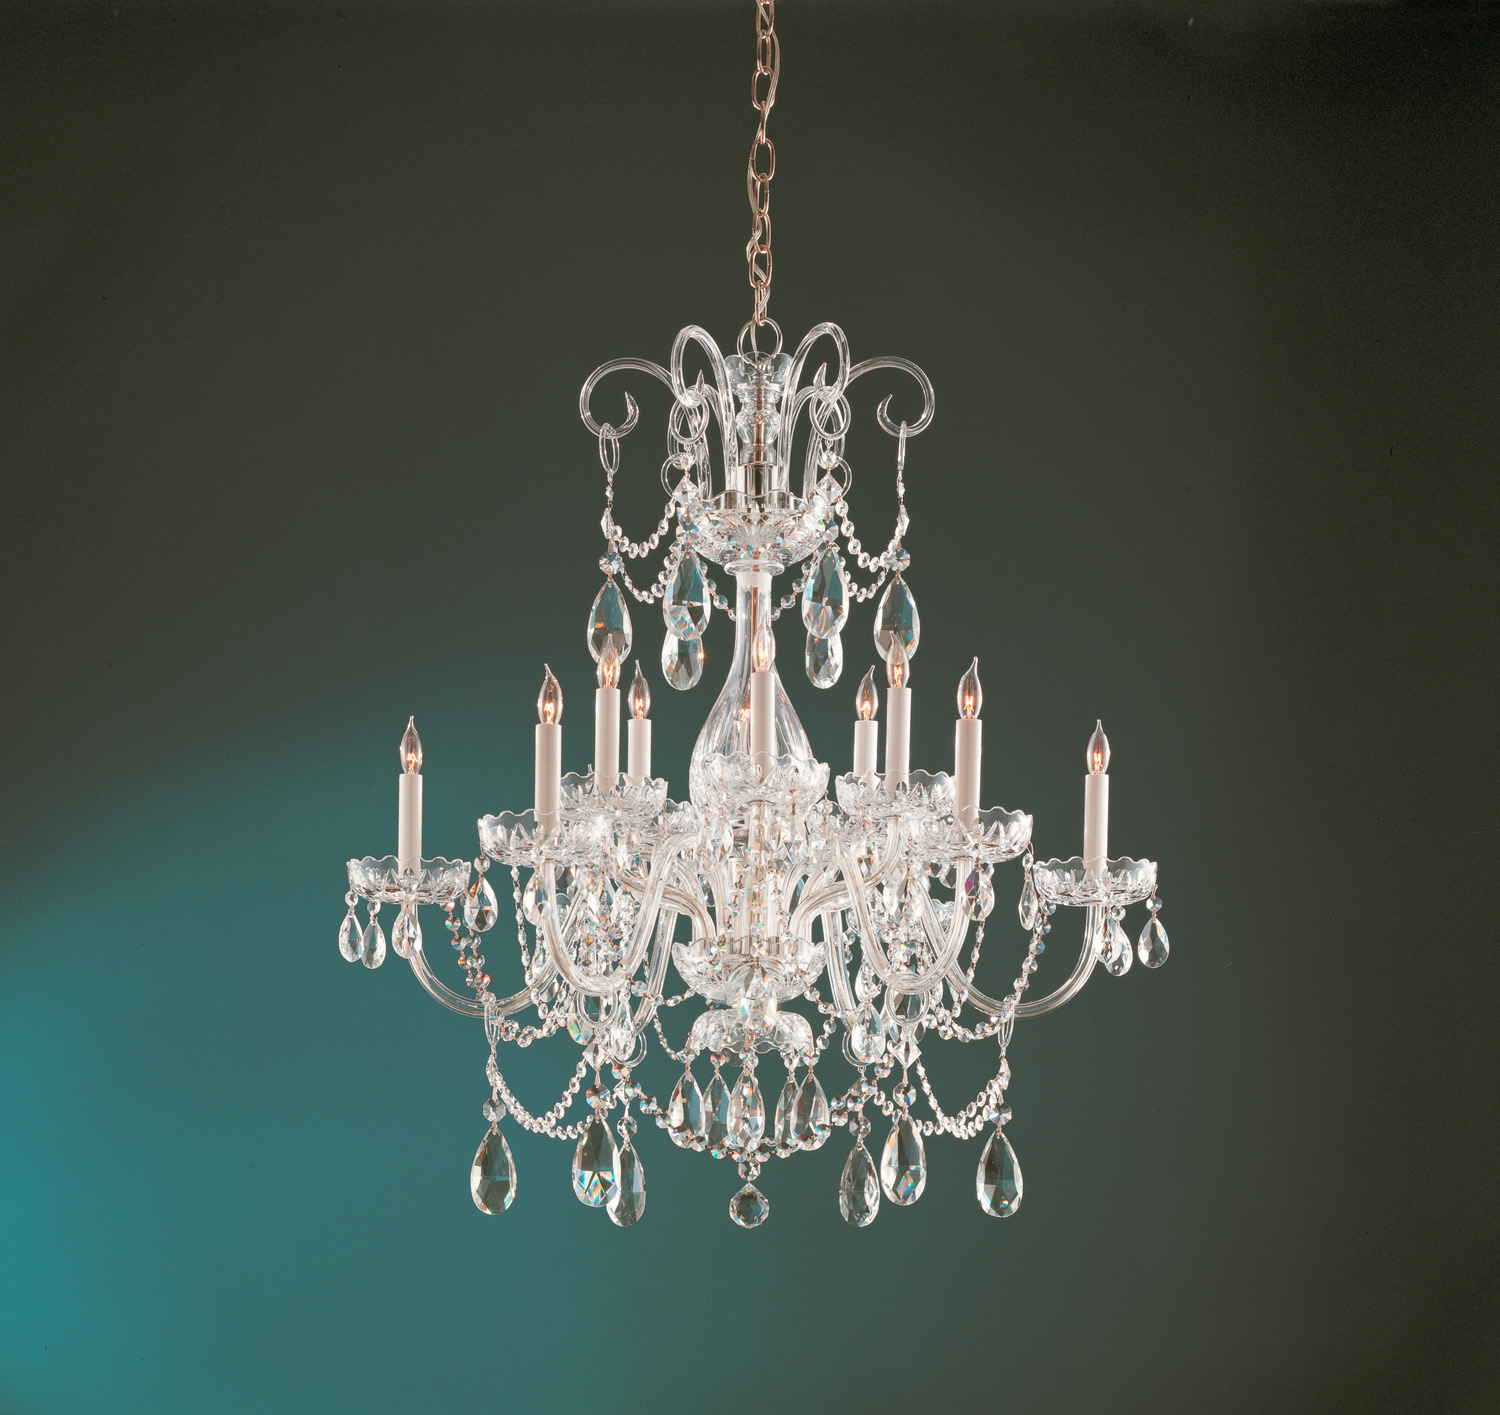 Crystorama 1035-PB-CL-MWP 12 Light Chandelier by Crystorama